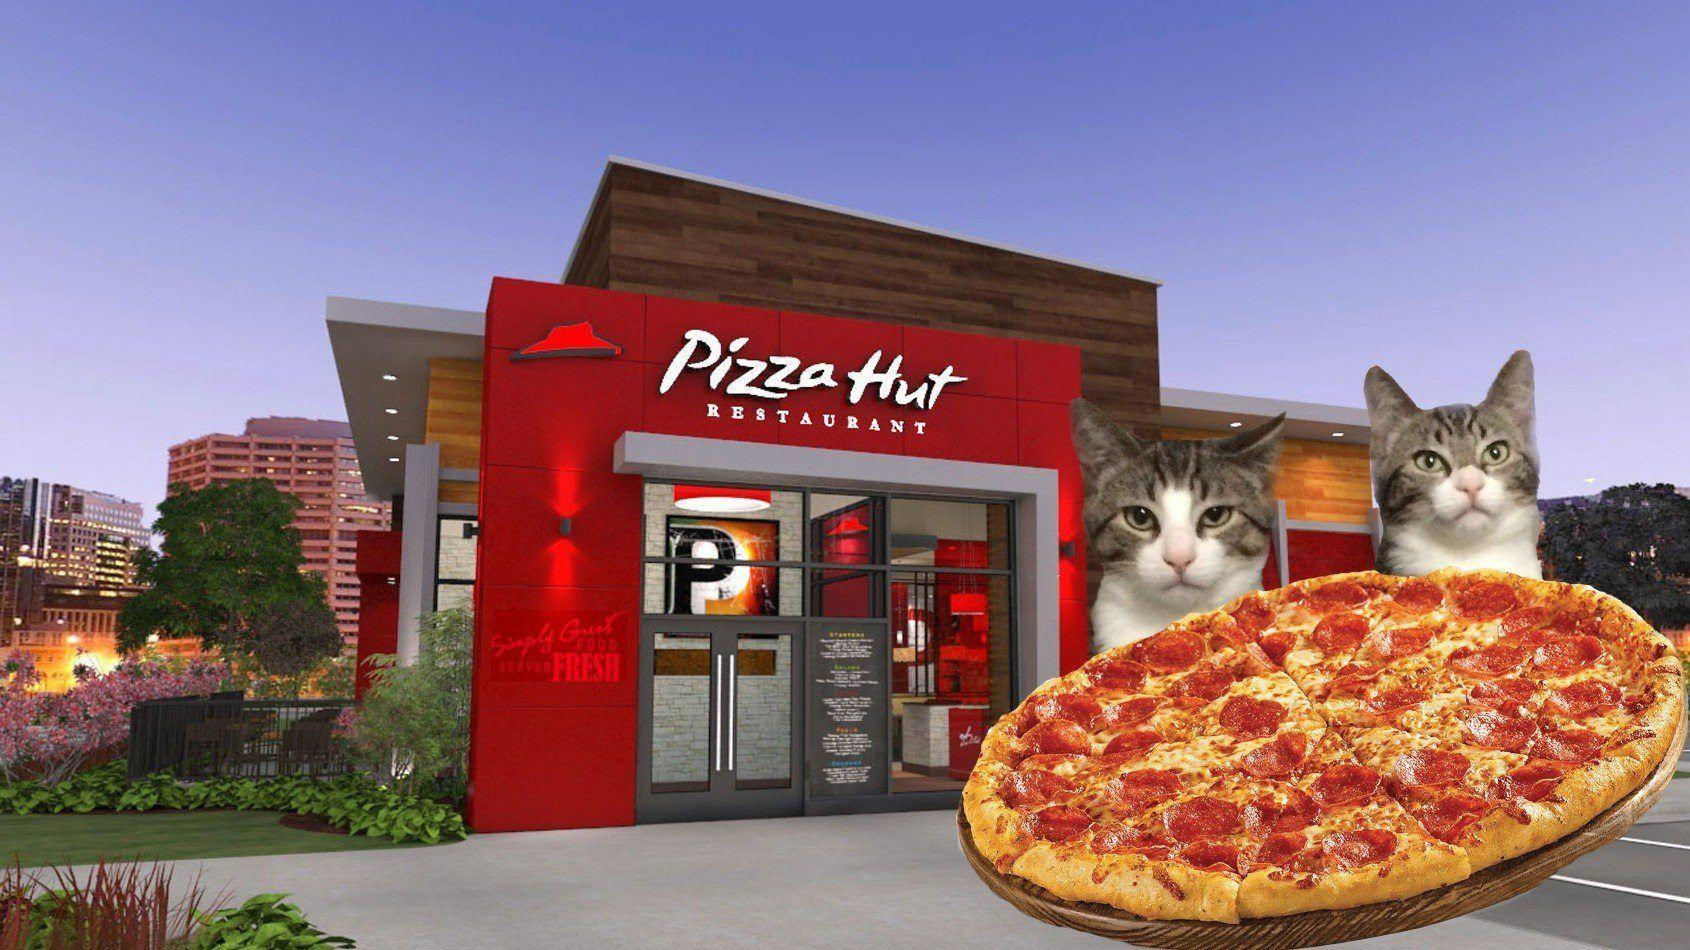 Pizza Hut - find the latest deals, coupons, vouchers, promotional codes and offers for critics-lucky.ml at OzBargain.